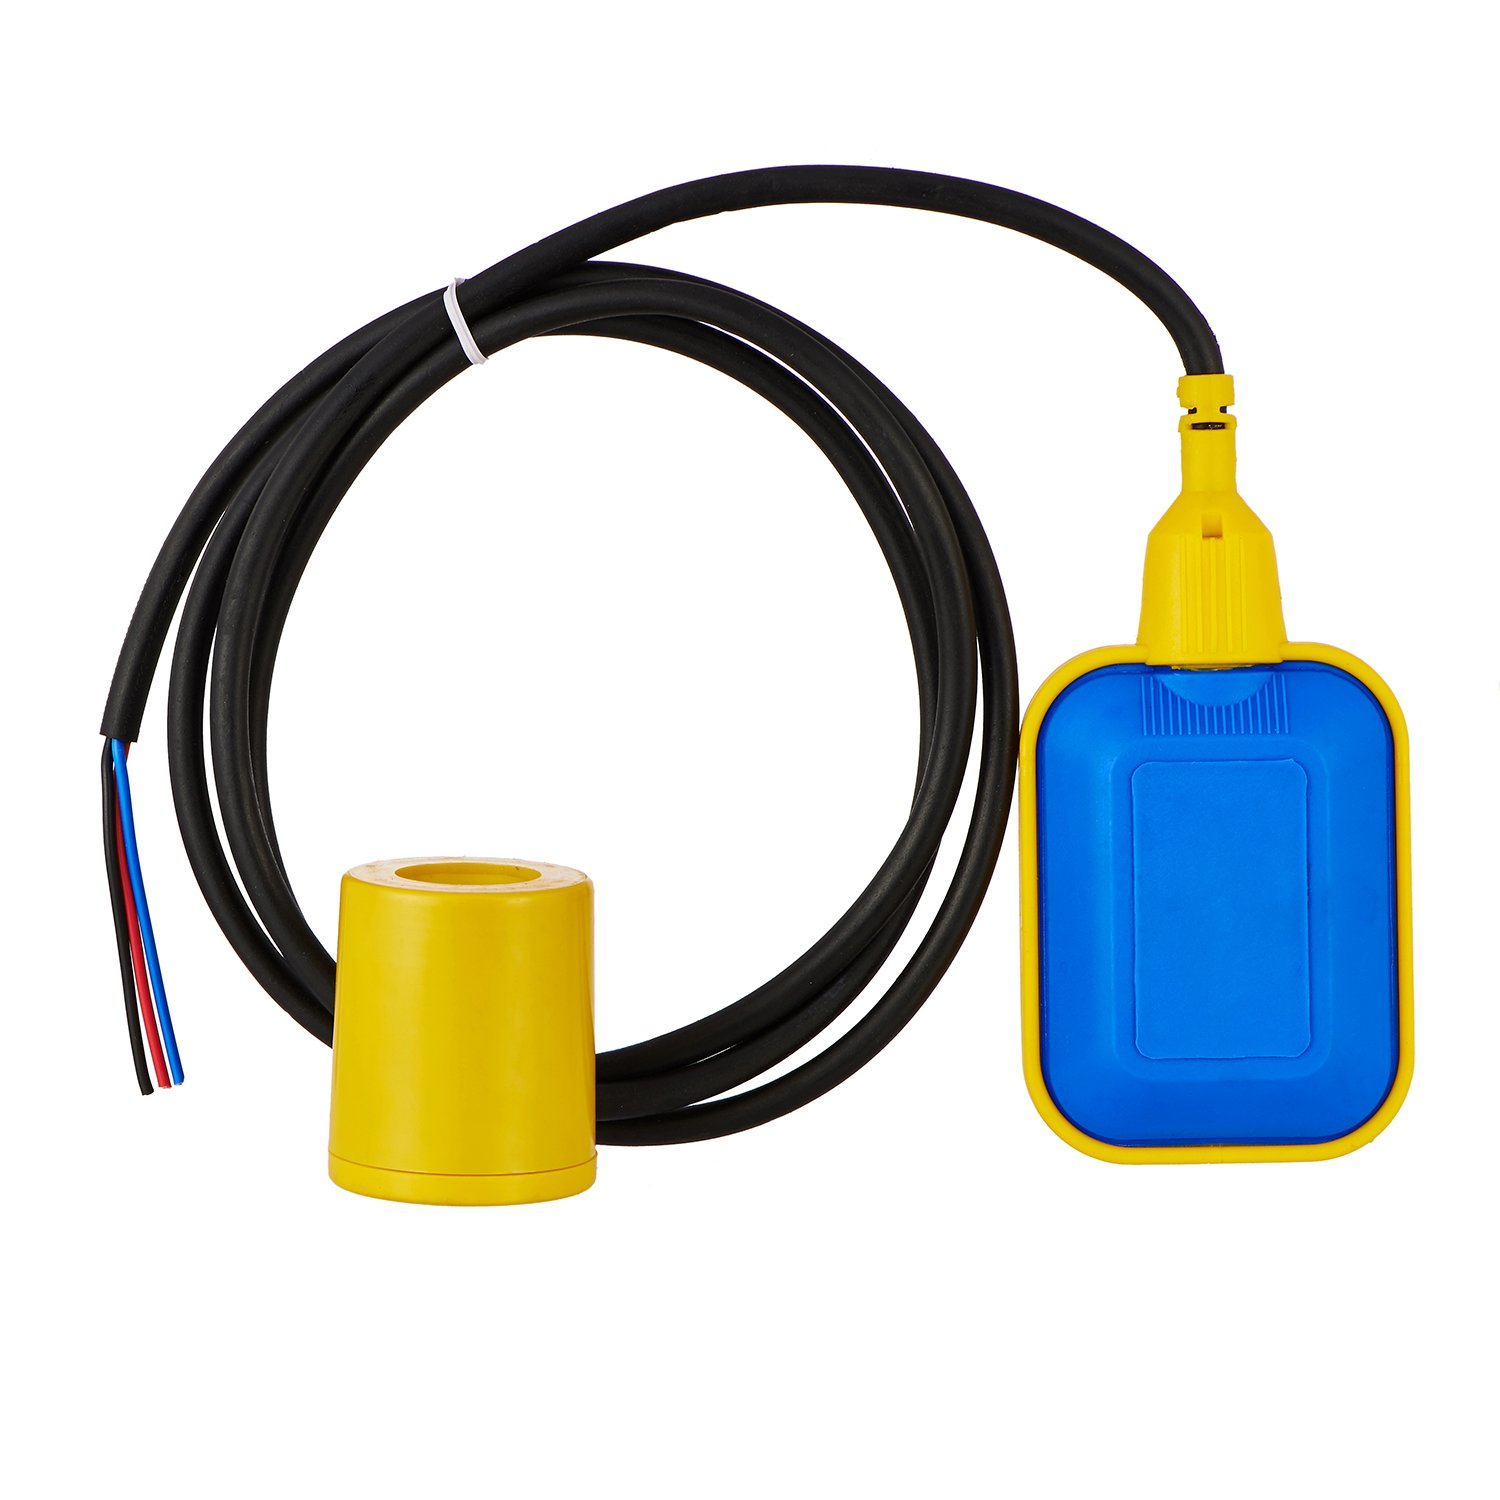 Best Rated In Sensors Helpful Customer Reviews The Pulselatching Circuit Above Can Be Connected To A Microcontroller Scientific Devices Cable Float Level Switch 2 Meters Length Product Image